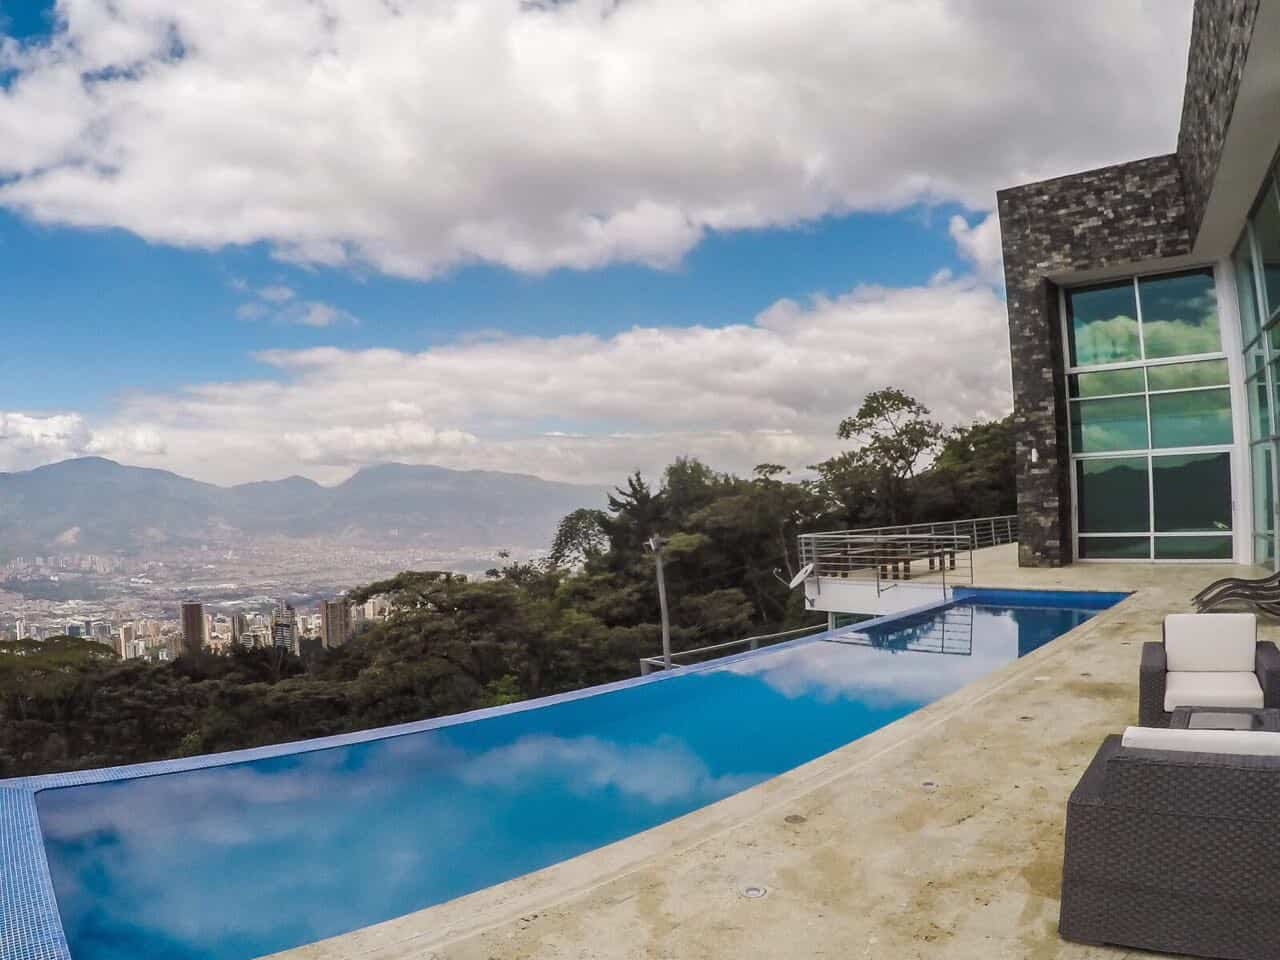 Medellin Apartments: Where to Stay in Medellin